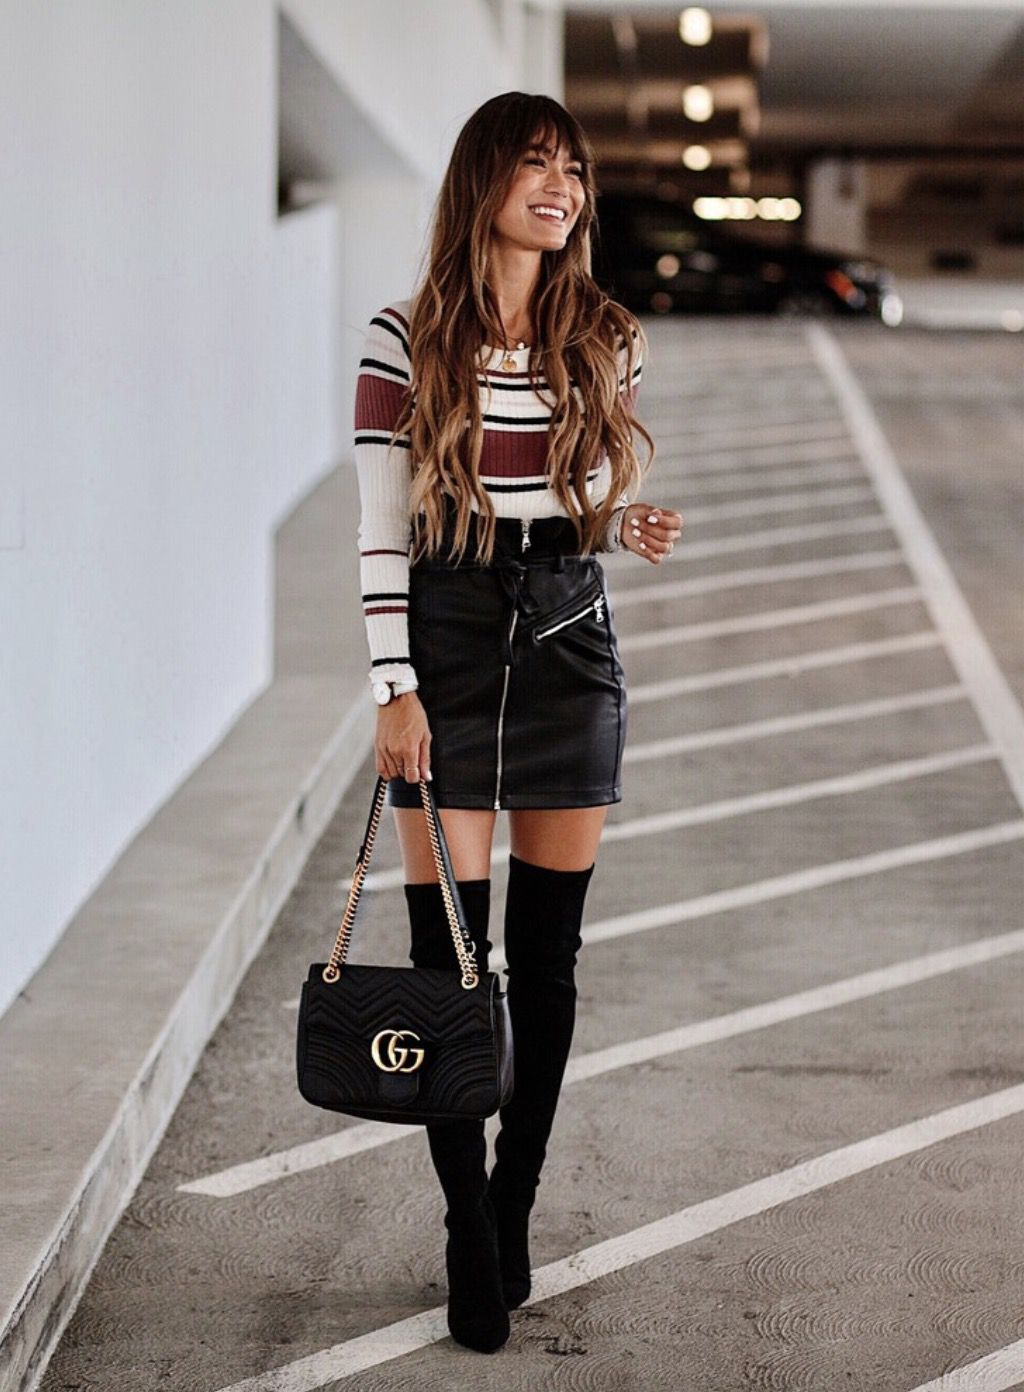 Black over the knee boots outfits with skirts and Gucci bag